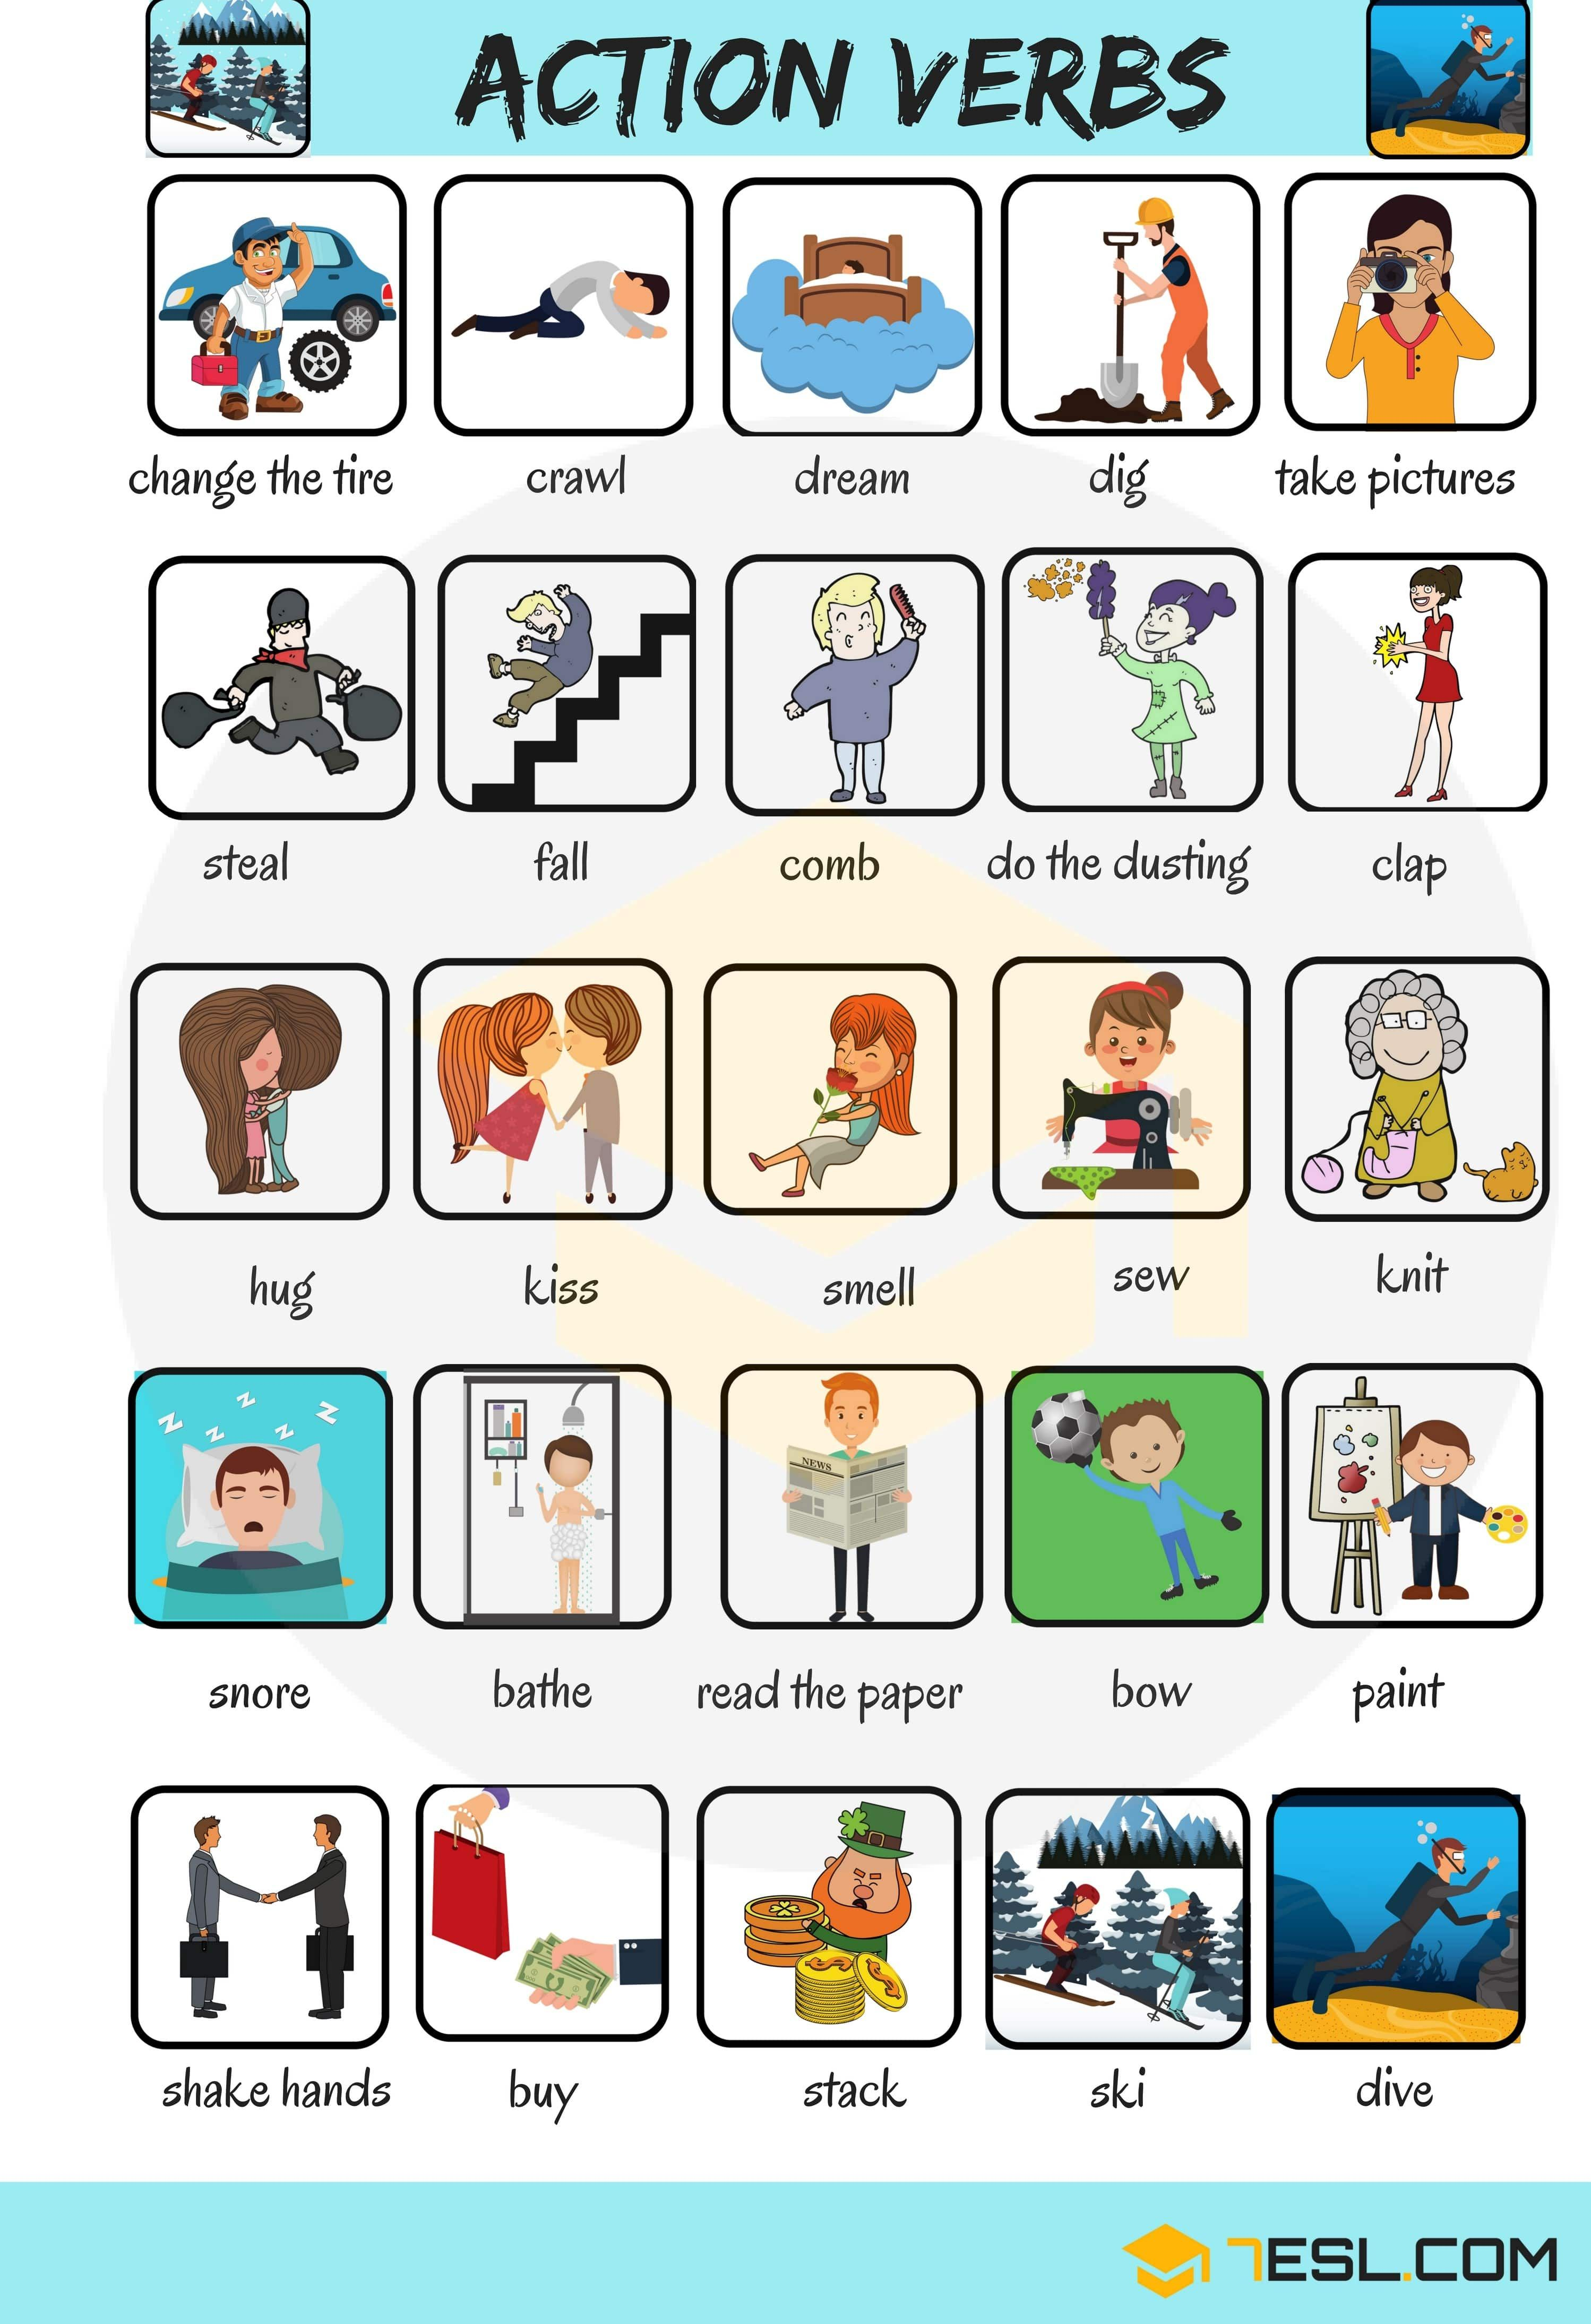 50 Common Action Verbs In English